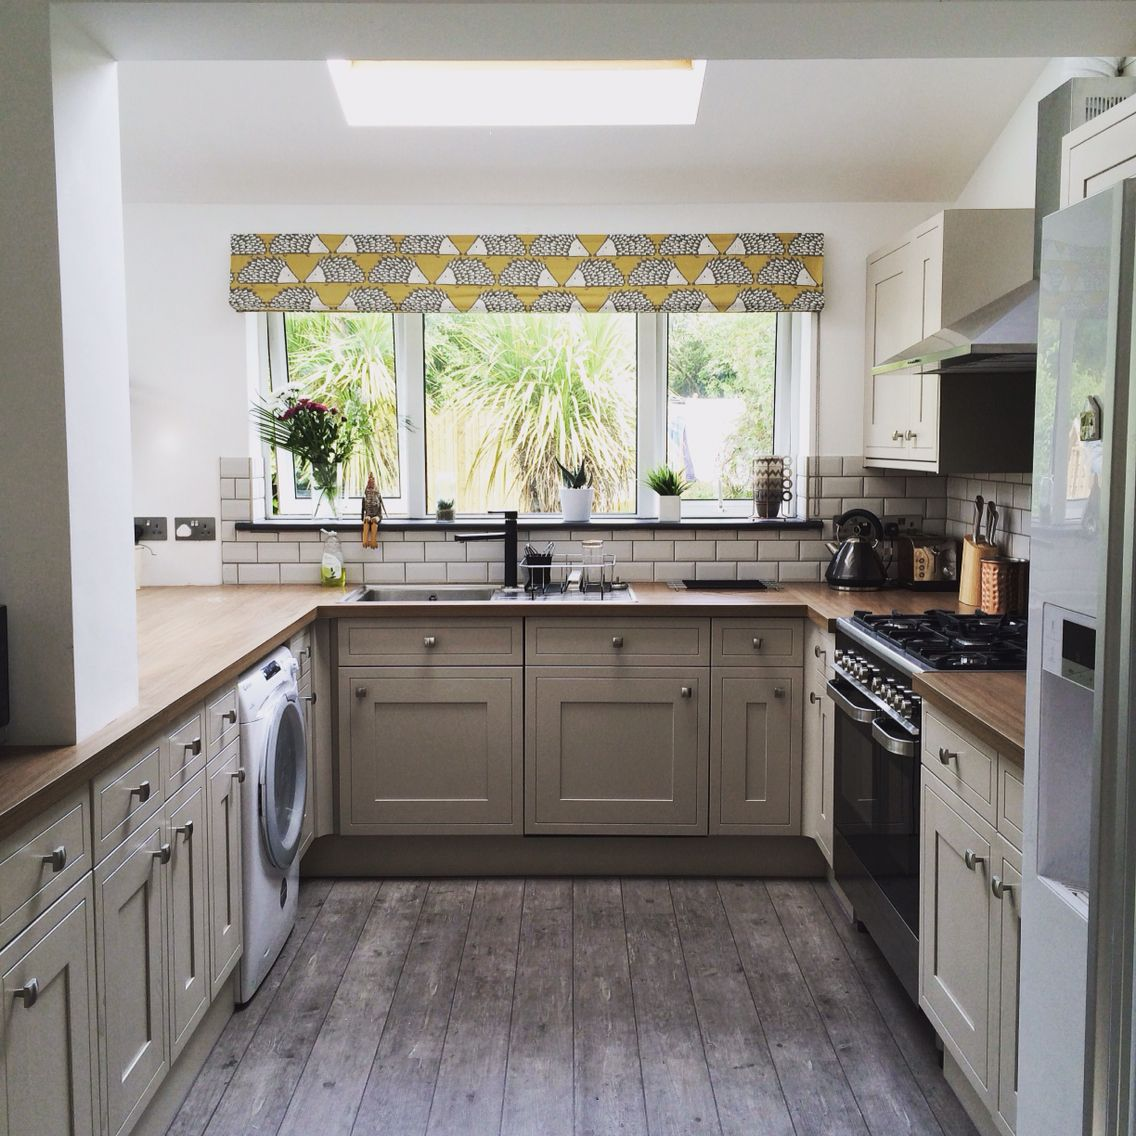 Tewkesbury Stone Kitchen With Yellow Blinds, Wooden Floor